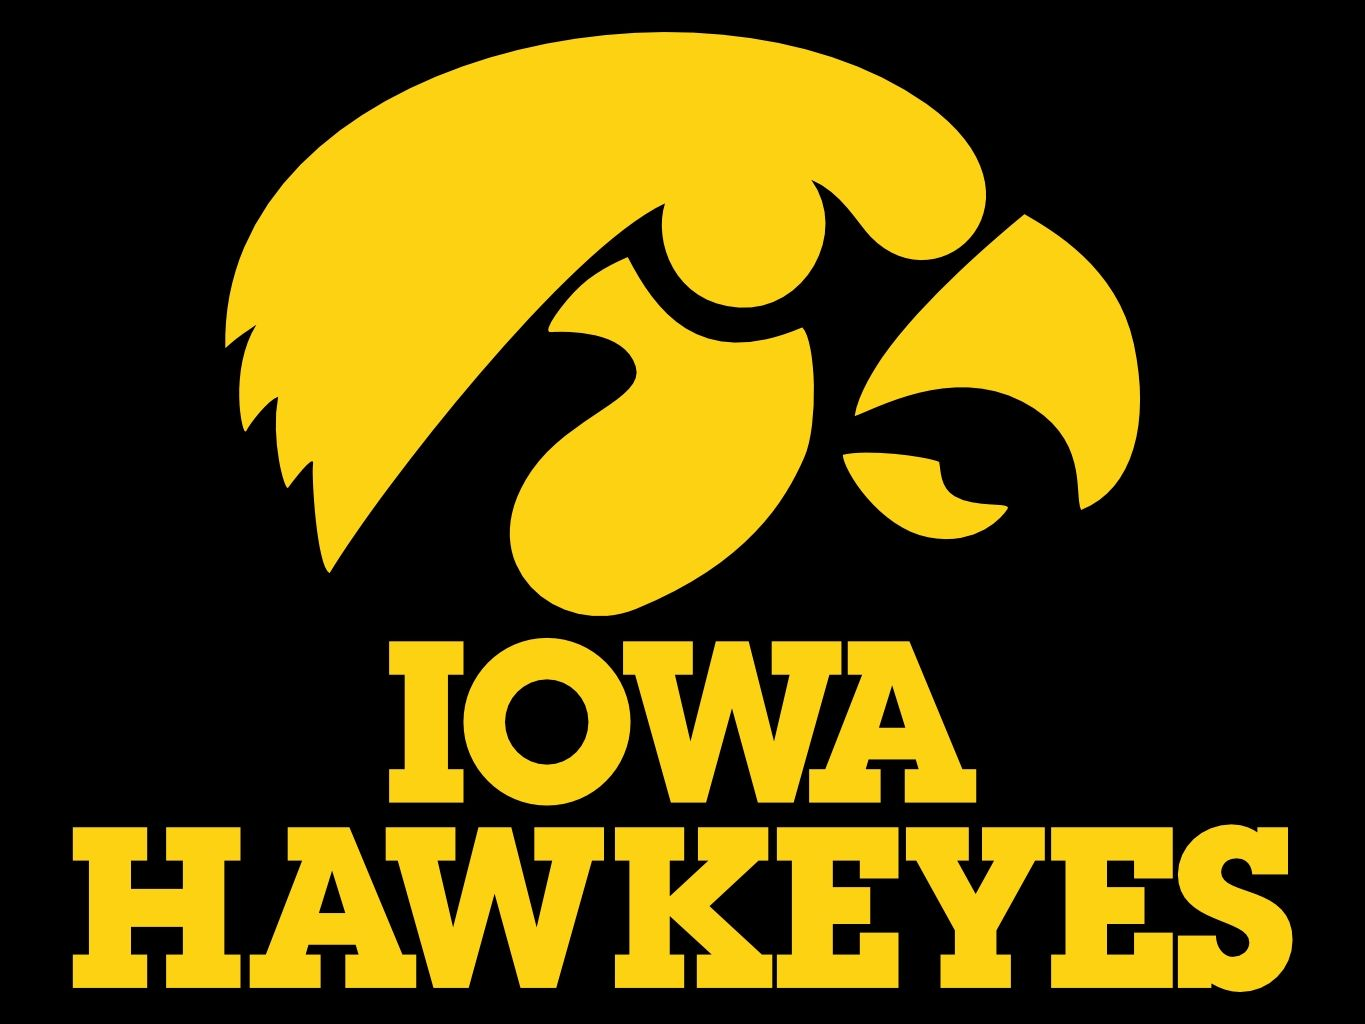 1365x1024 Free Iowa Hawkeyes Wallpaper - WallpaperSafari